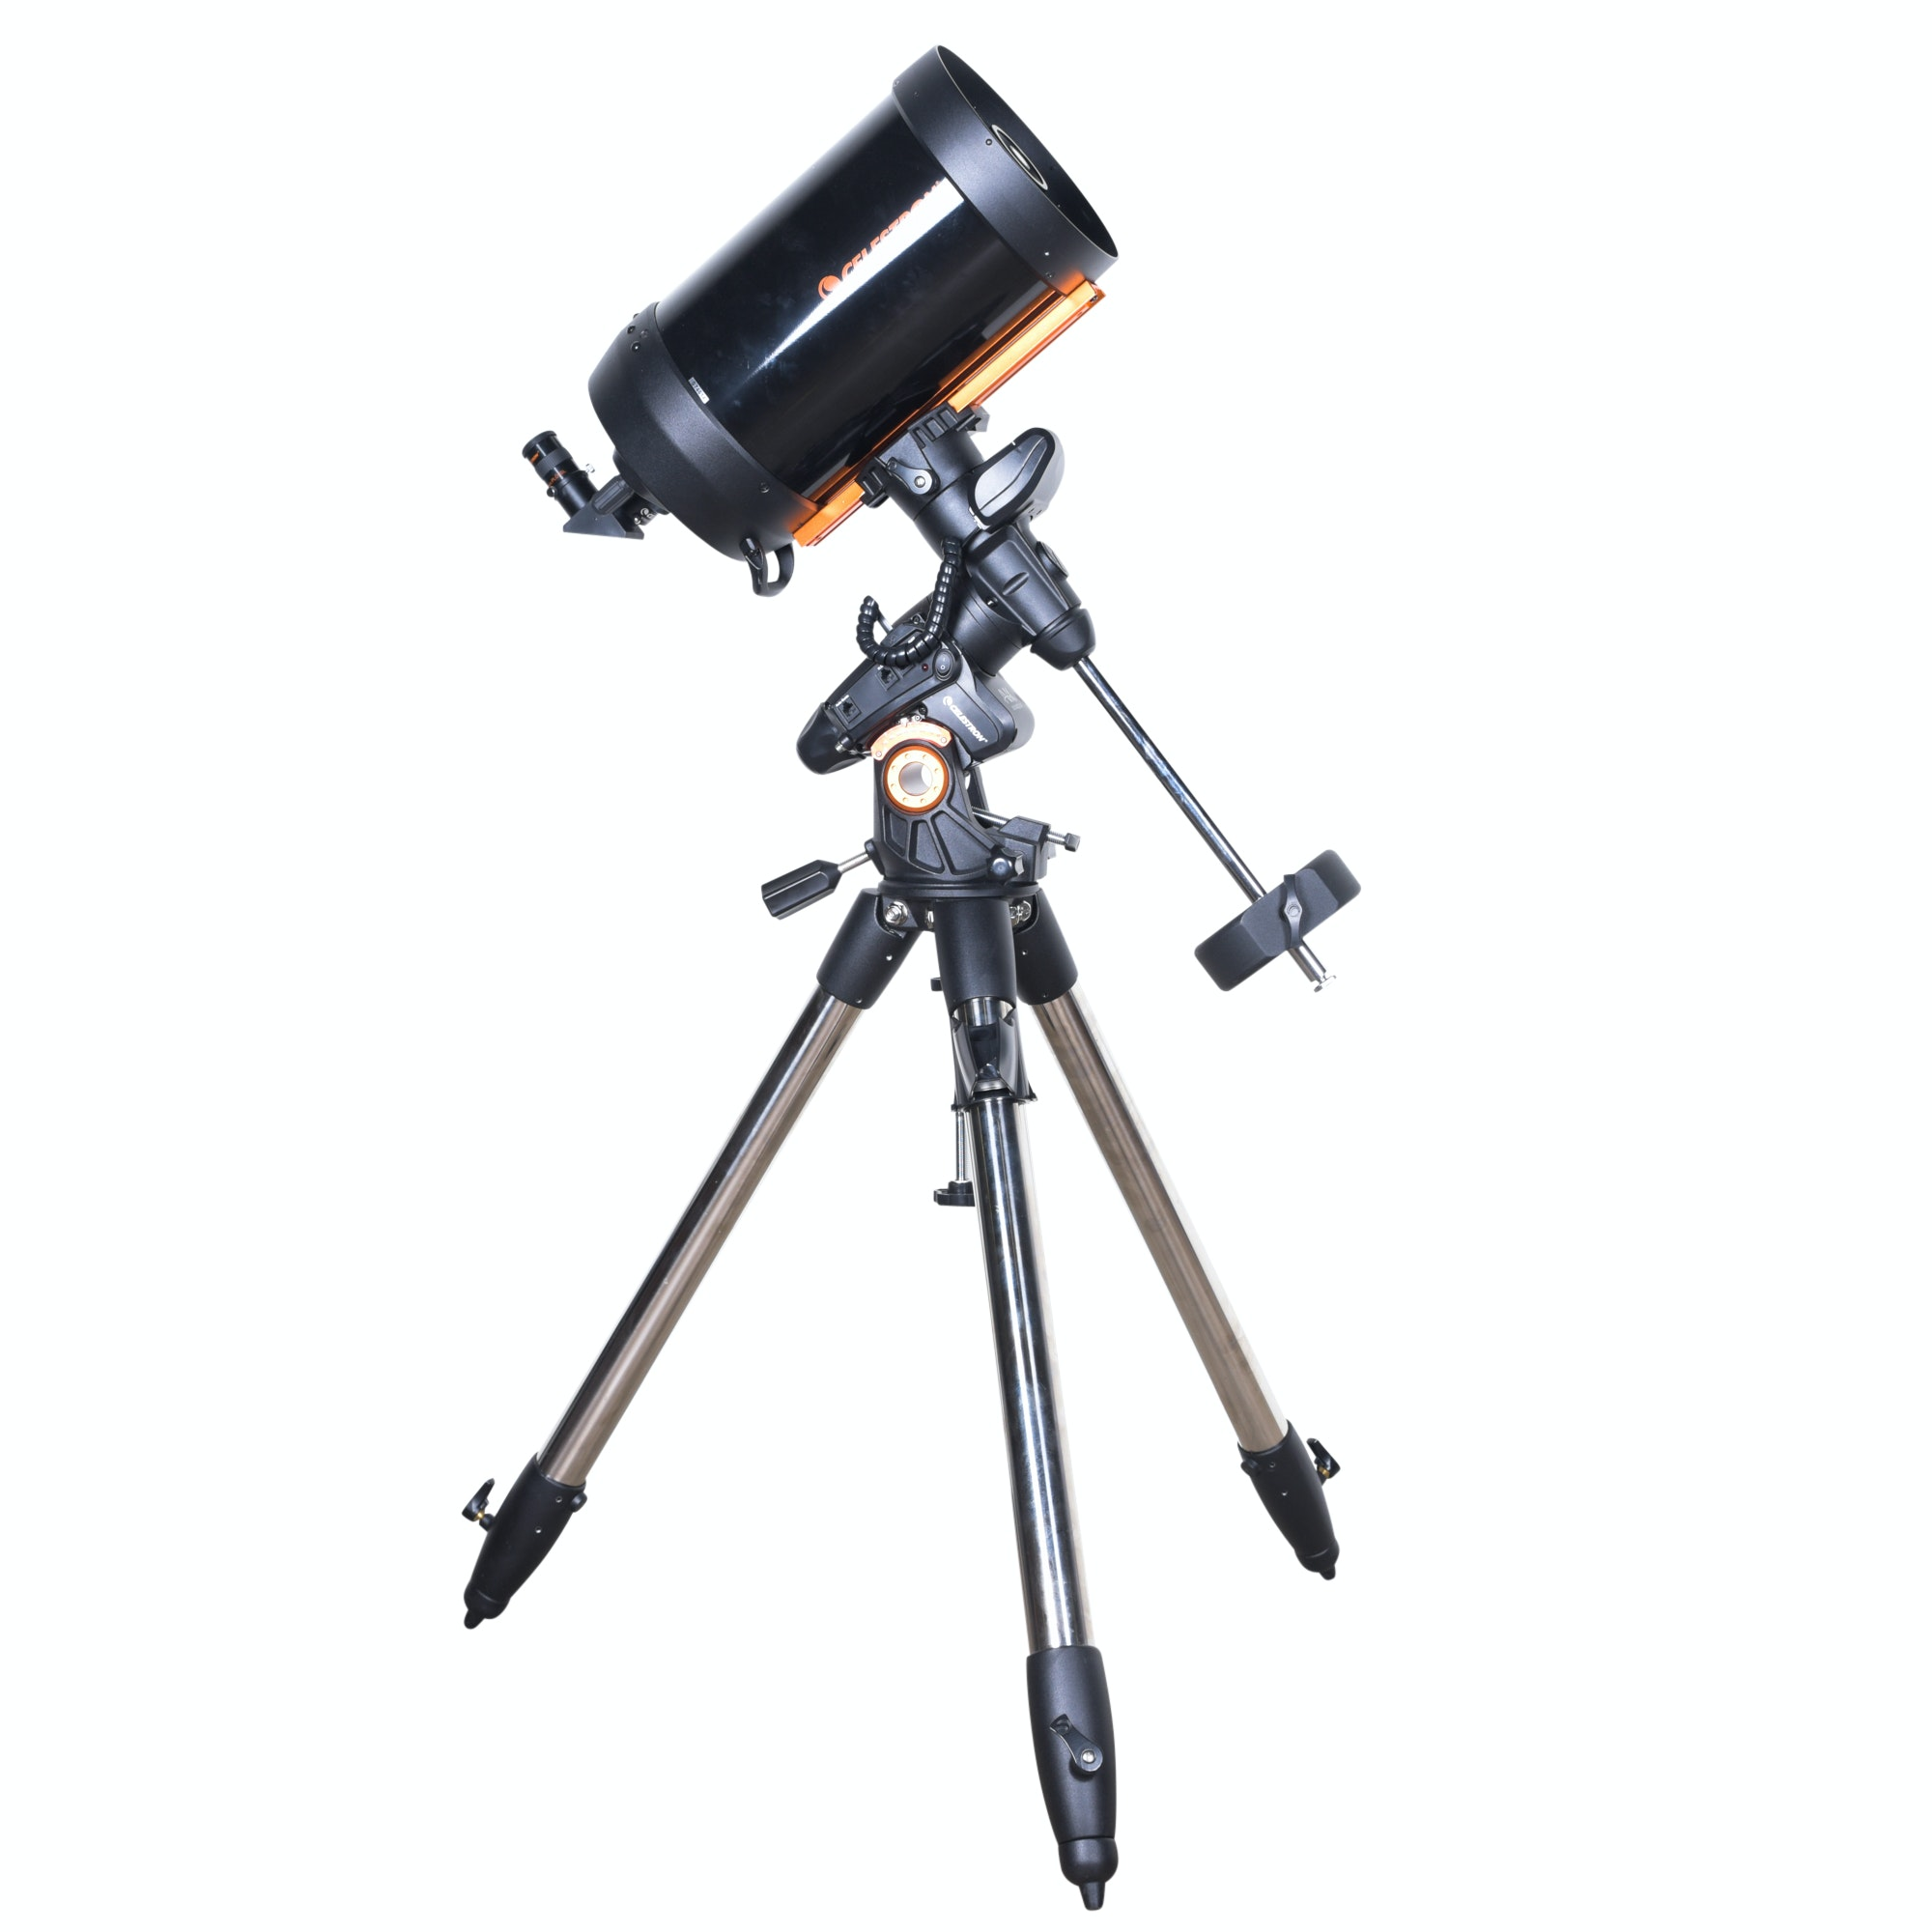 Celestron Telescope with StarBright XLT and Advanced VX Computerized Mount